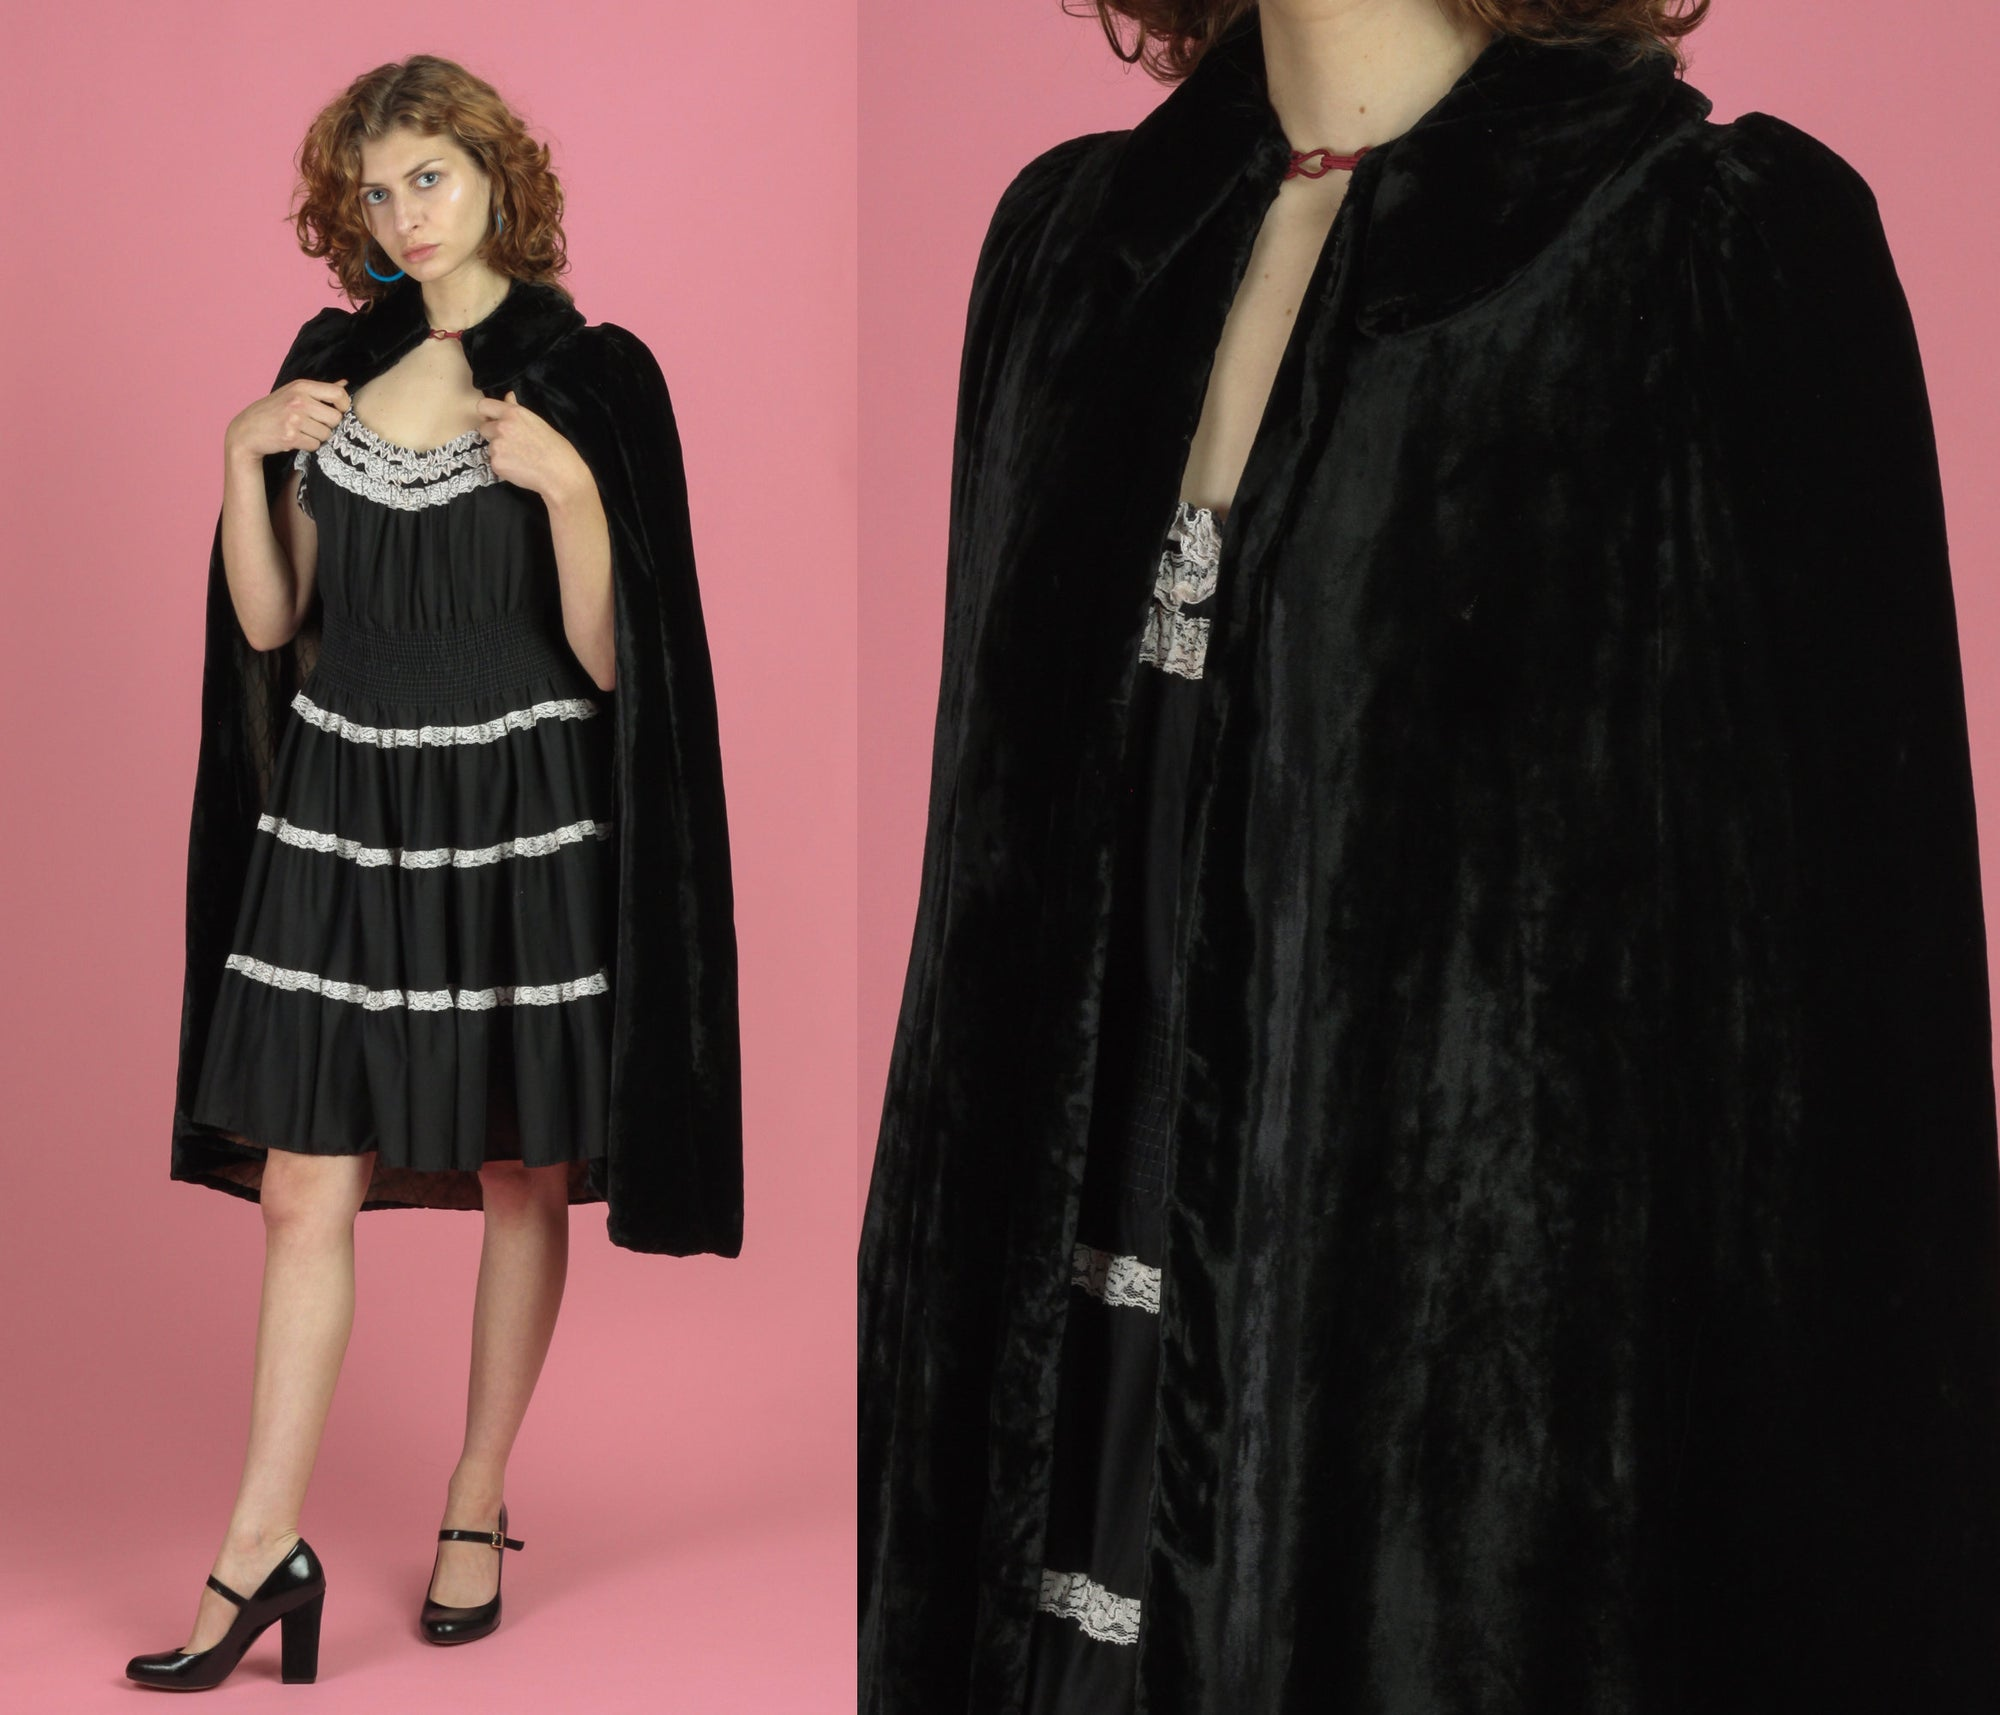 Vintage 1930s Black Velvet Opera Cape - XS to Small